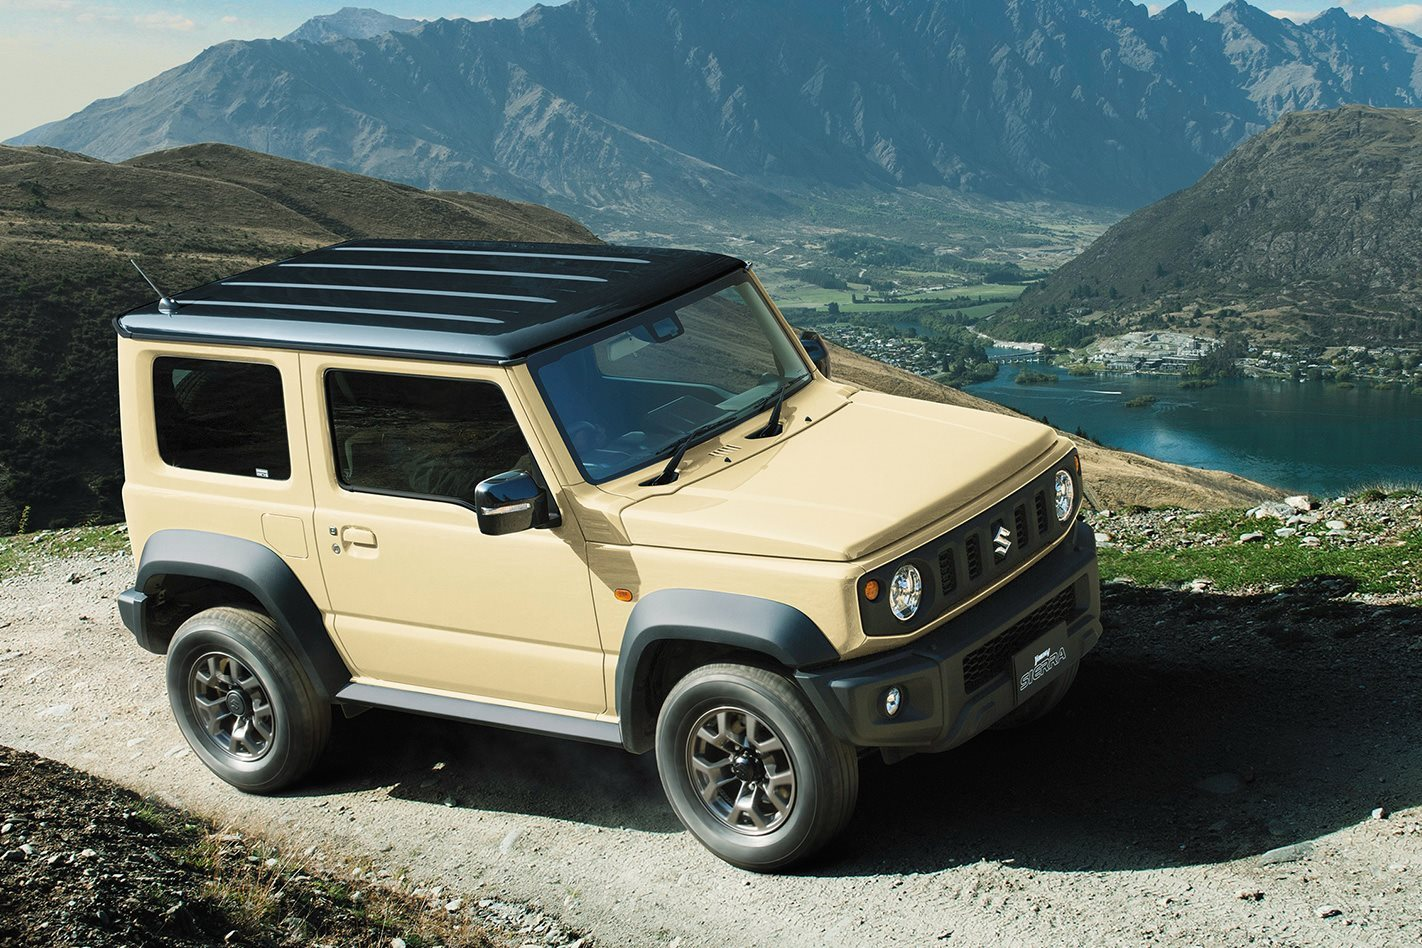 2019 suzuki jimny to be sub 30k high spec off roader. Black Bedroom Furniture Sets. Home Design Ideas